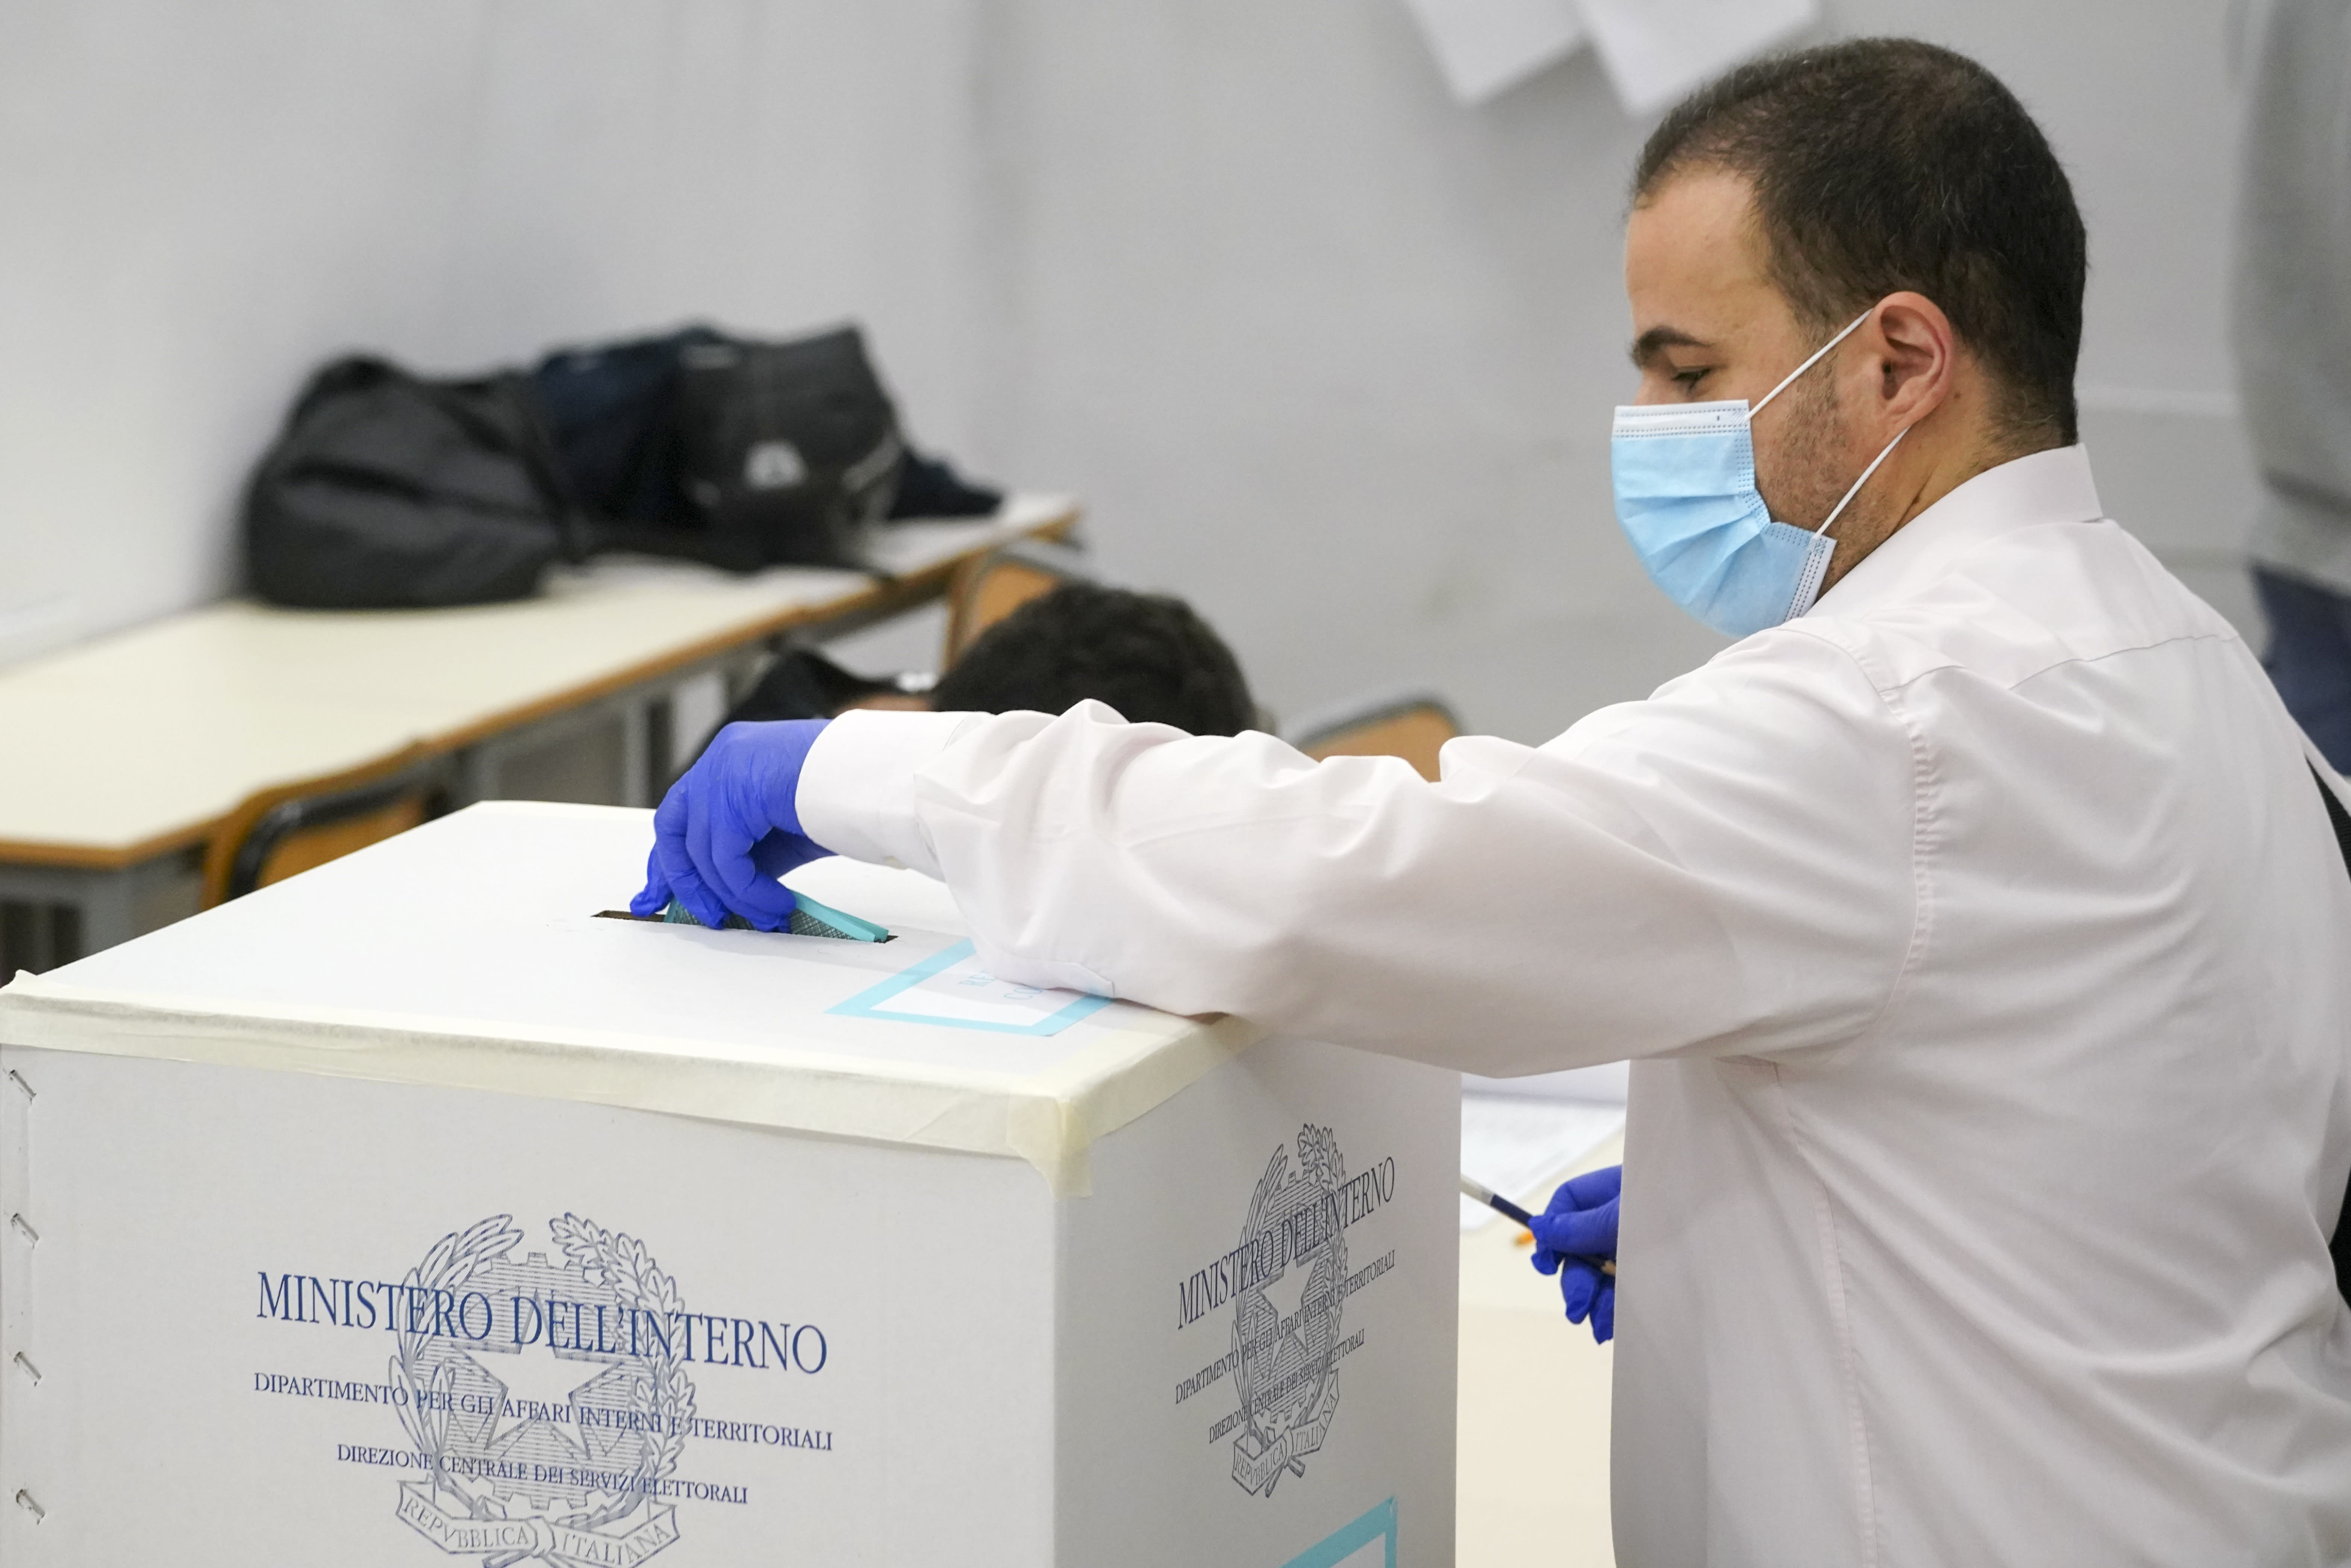 A man casts his ballot at a polling station, in Rome, Sunday, Sept. 20, 2020. On Sunday and Monday Italians are called to vote nationwide in a referendum to confirm a historical change to the country's constitution to drastically reduce the number of Members of Parliament from 945 to 600. Eighteen million of Italian citizens will also vote on Sunday and Monday to renew local governors in seven regions, along with mayors in approximately 1,000 cities. (AP Photo/Andrew Medichini)